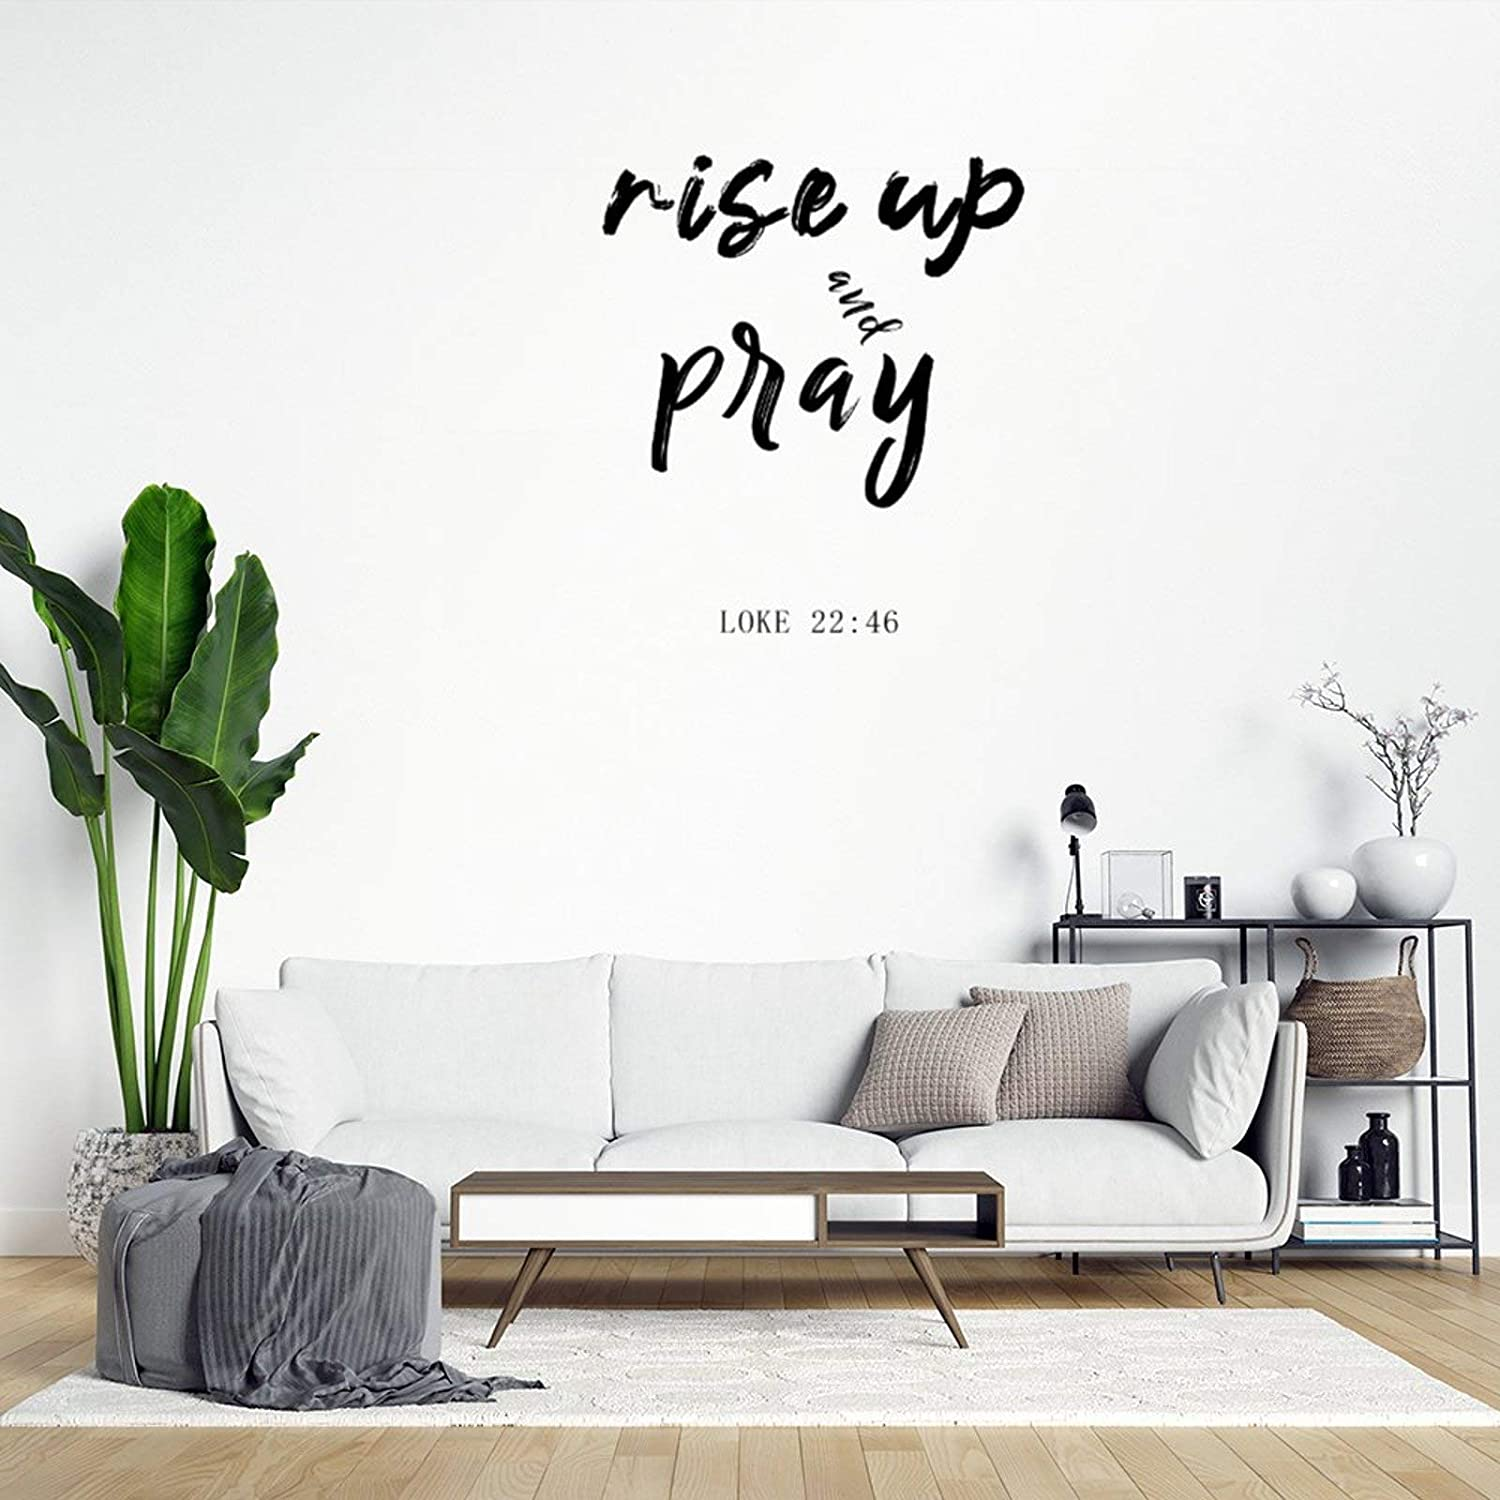 Rise Up Pray Wall Sticker,Inspirational Quotes Wall Decal Saying Family Room,Wall Art Decor for Boys Room Kids Bedroom Living Room